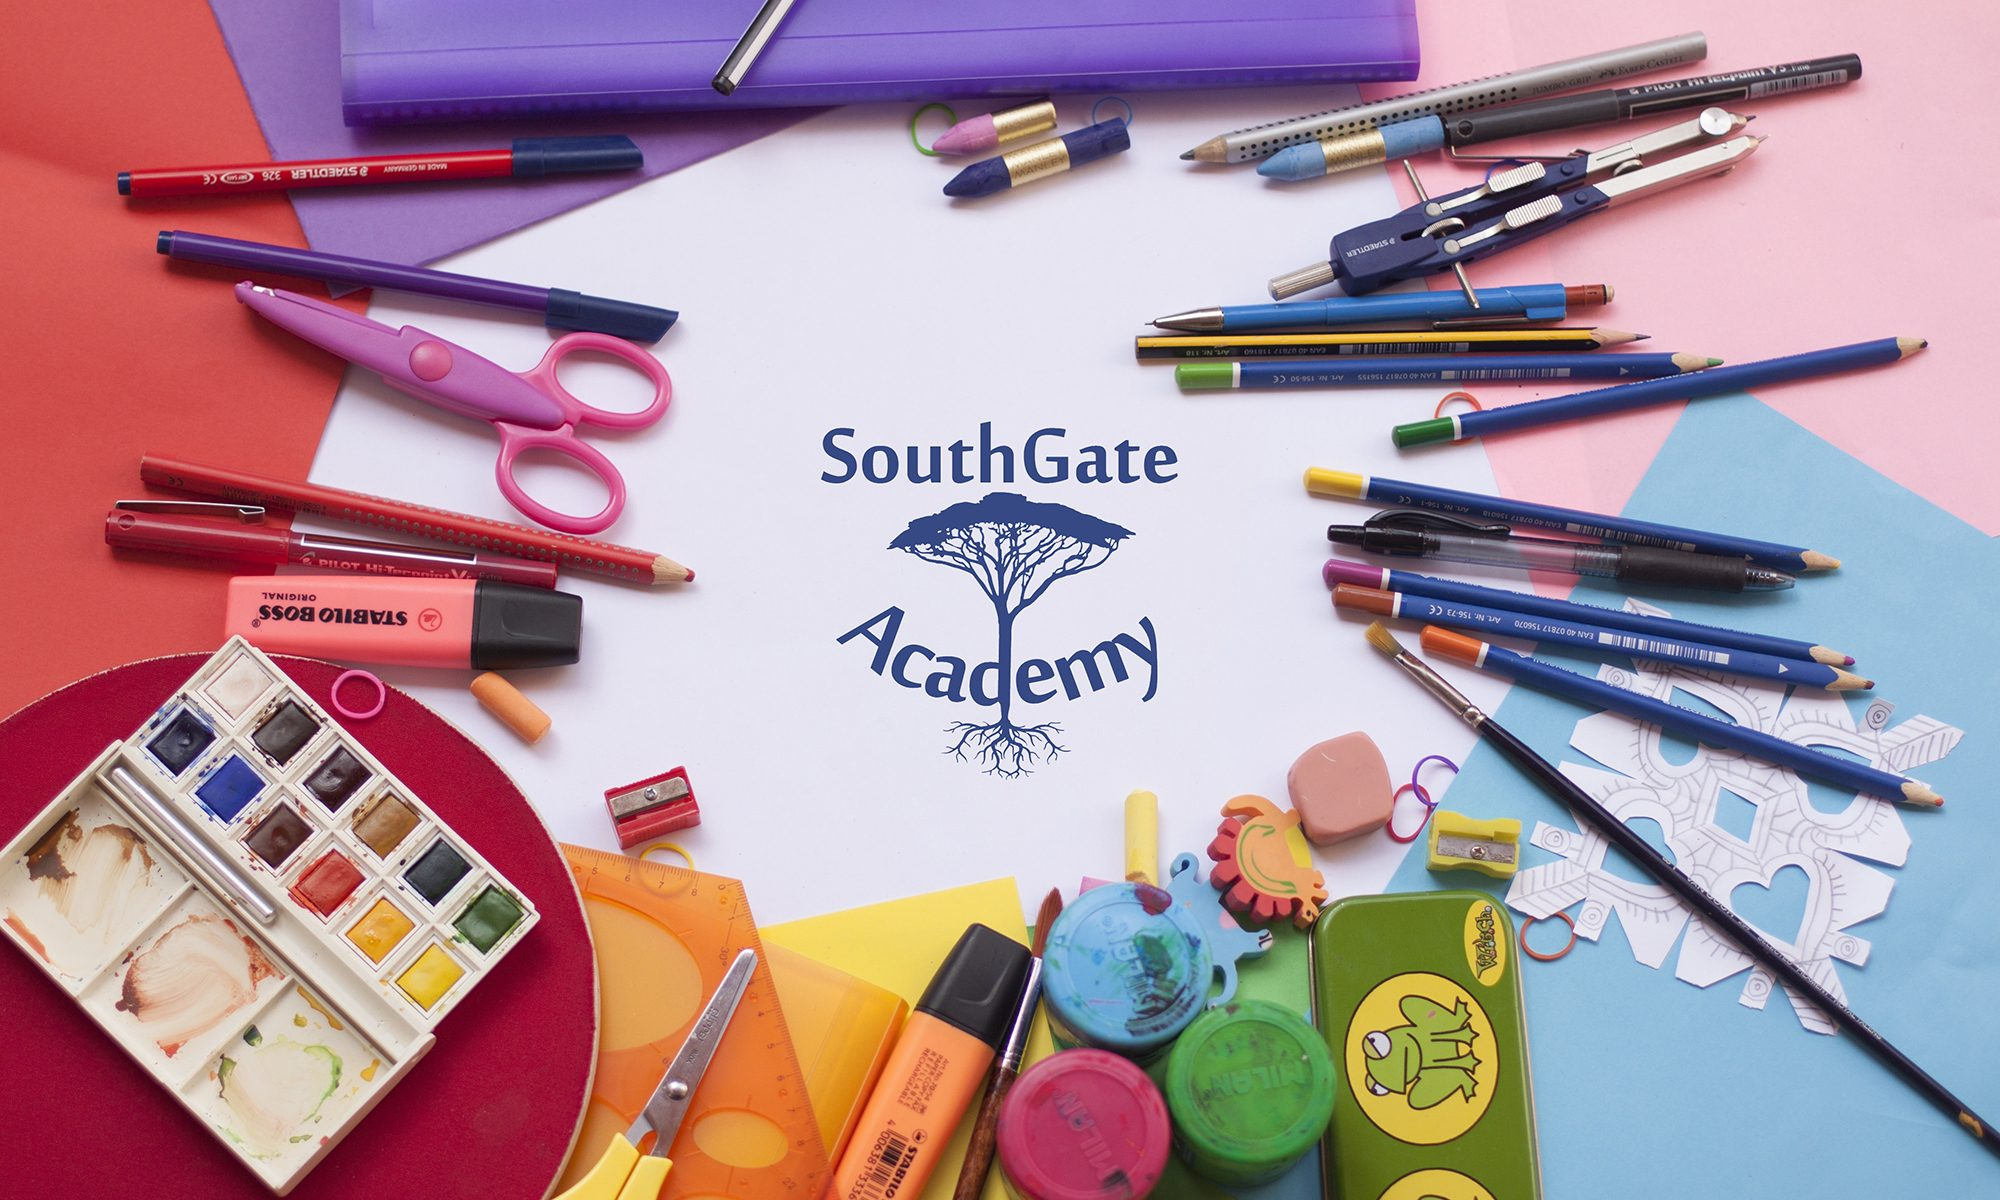 South Gate Academy